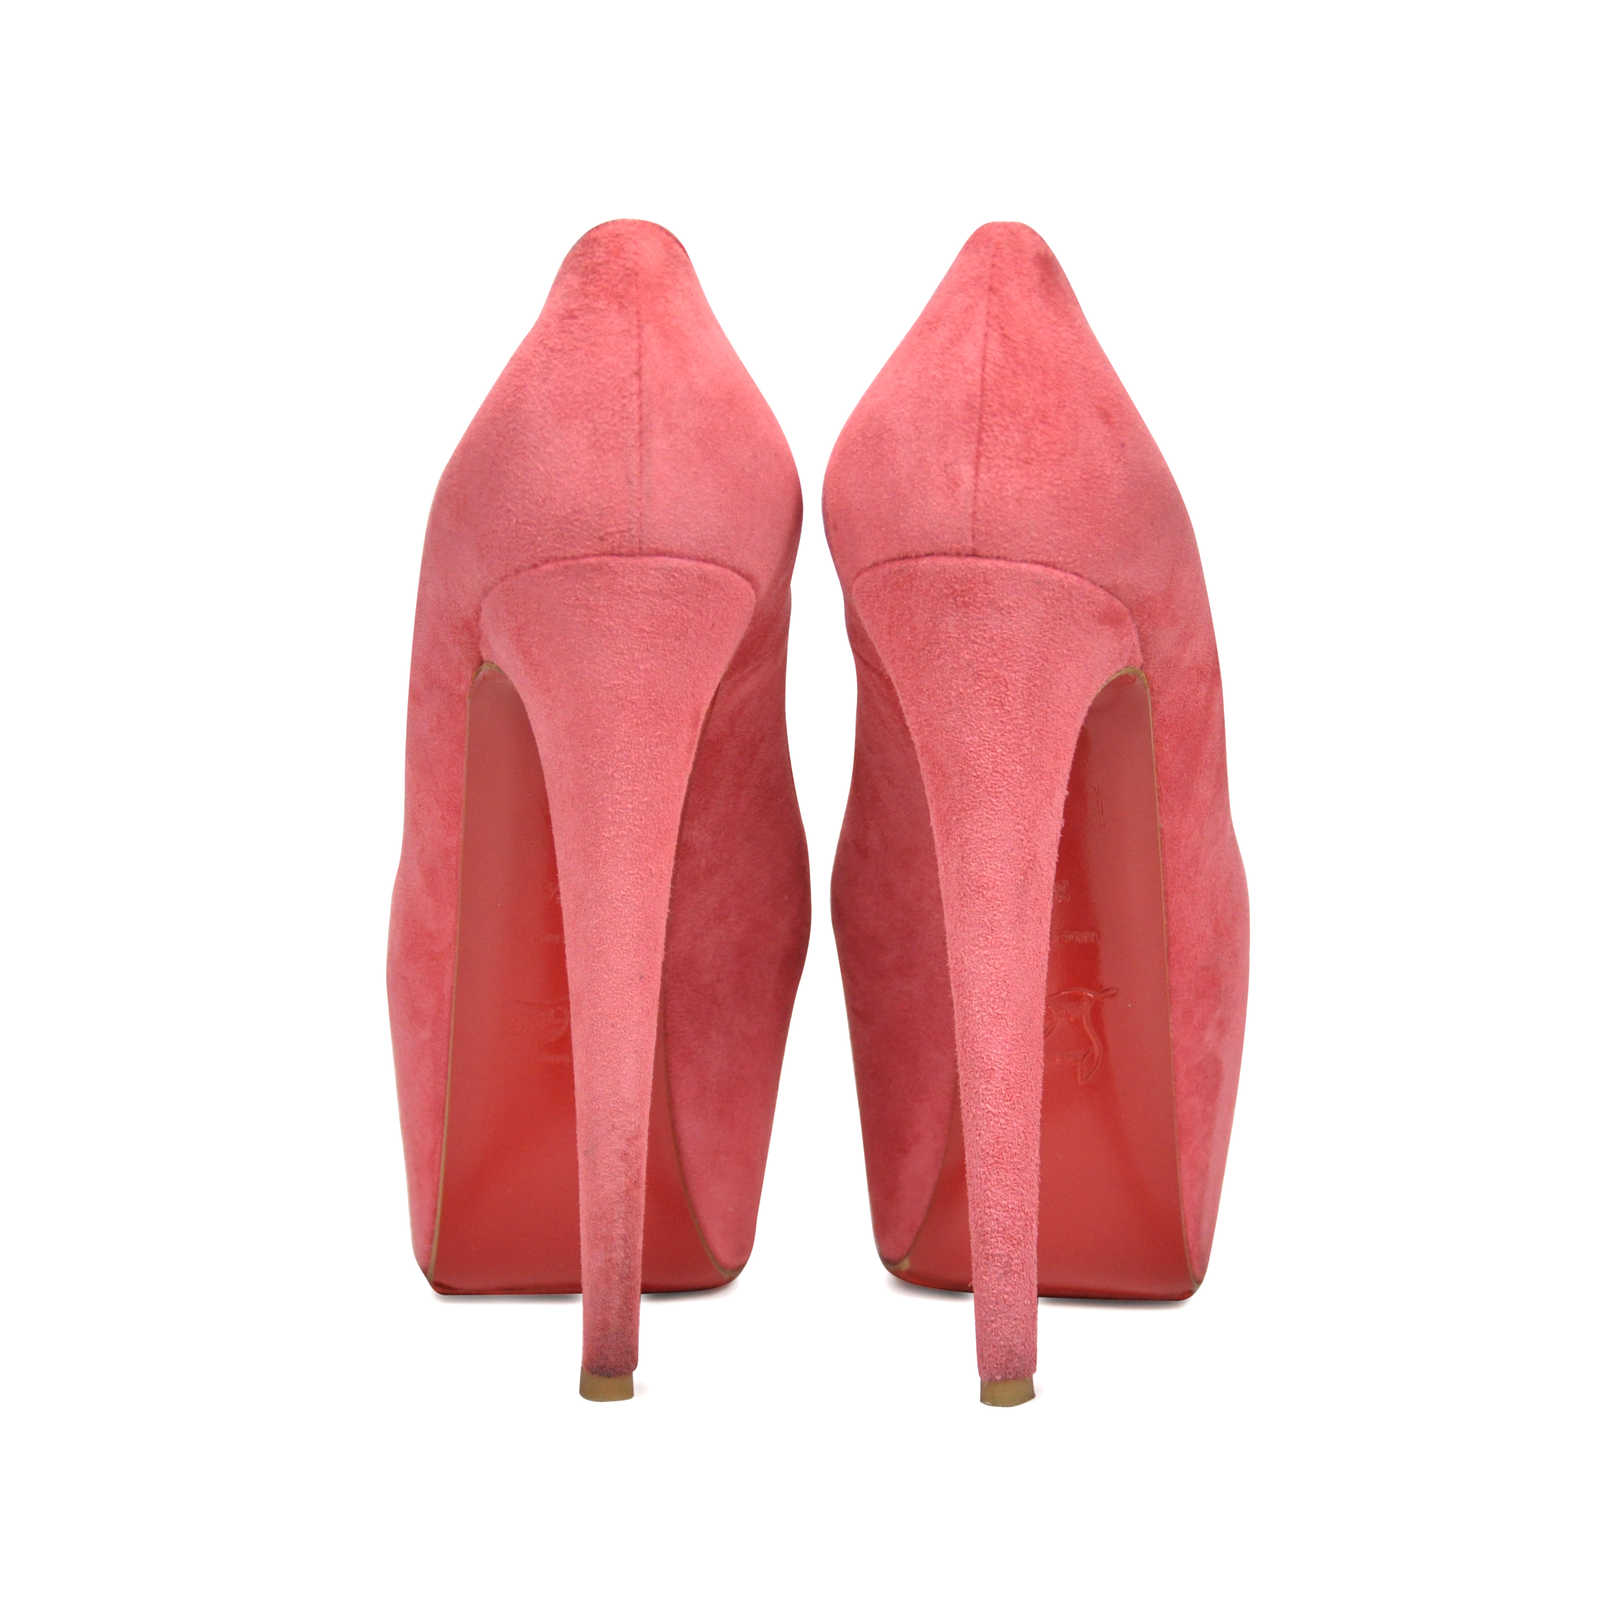 ce913210c669 ... Authentic Second Hand Christian Louboutin Suede Daffodile Pumps (PSS-197 -00006) ...